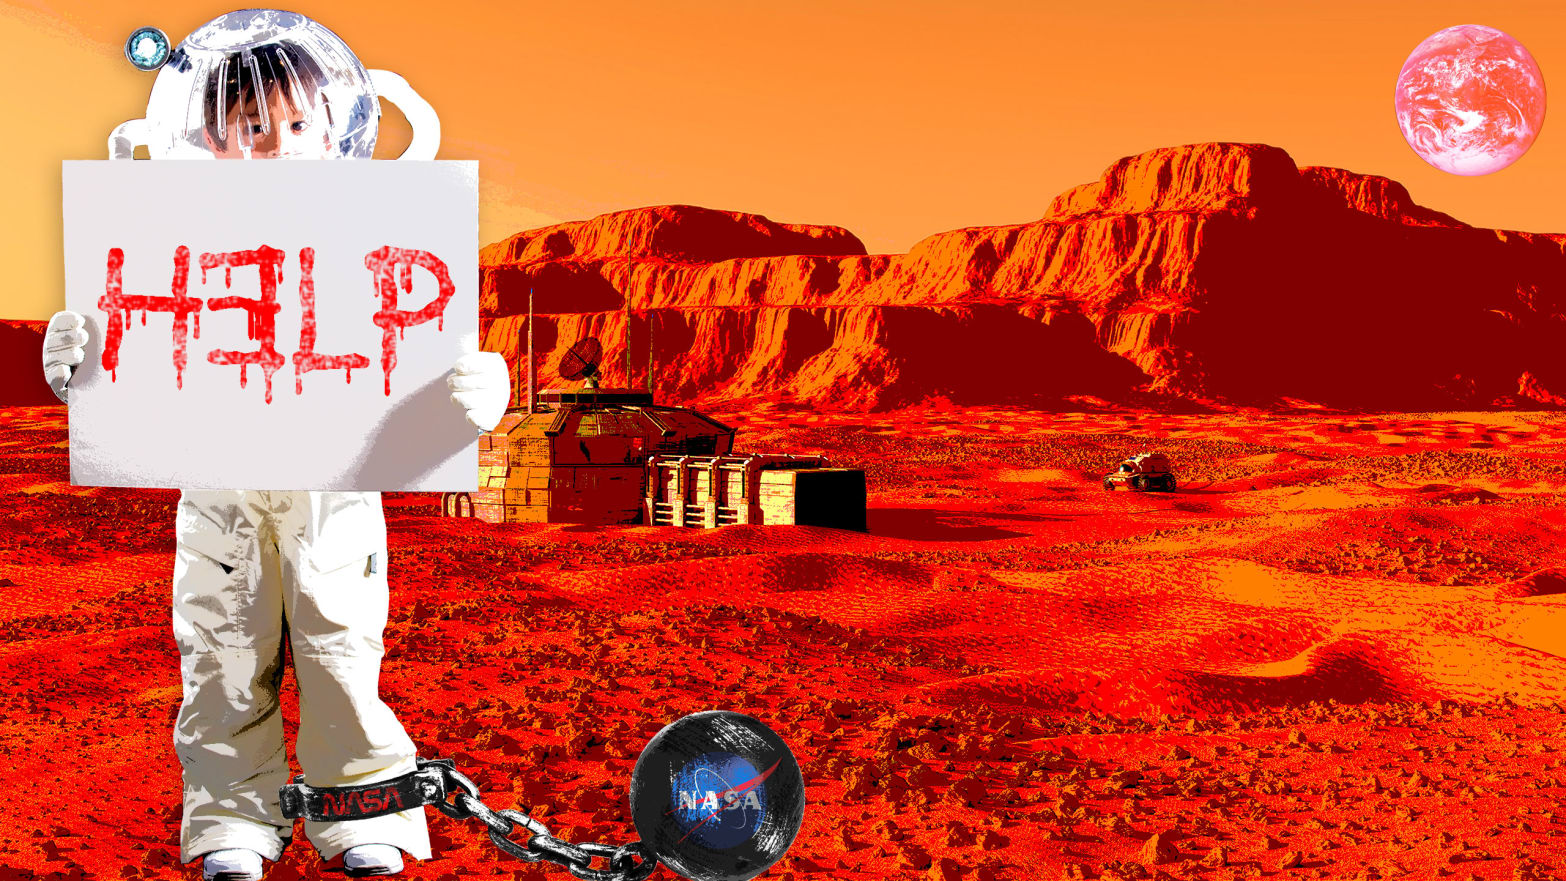 Nudist mars one think